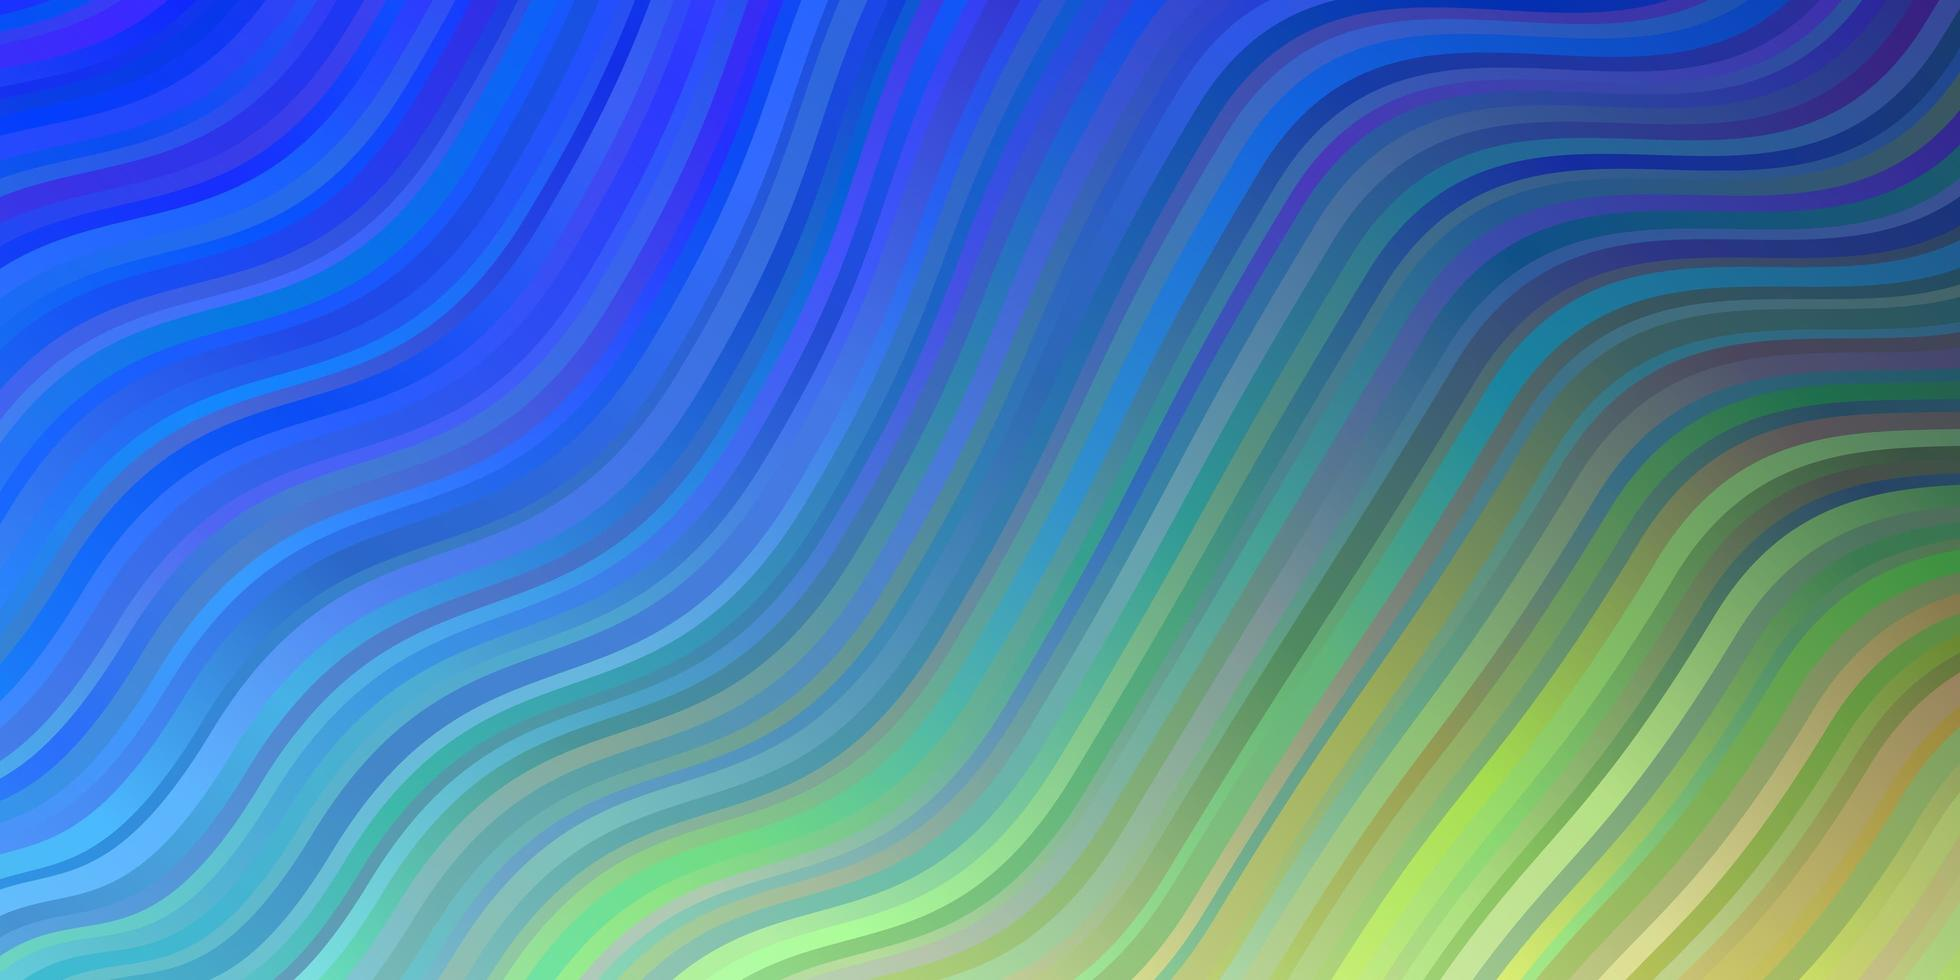 Light Blue, Green vector background with wry lines.